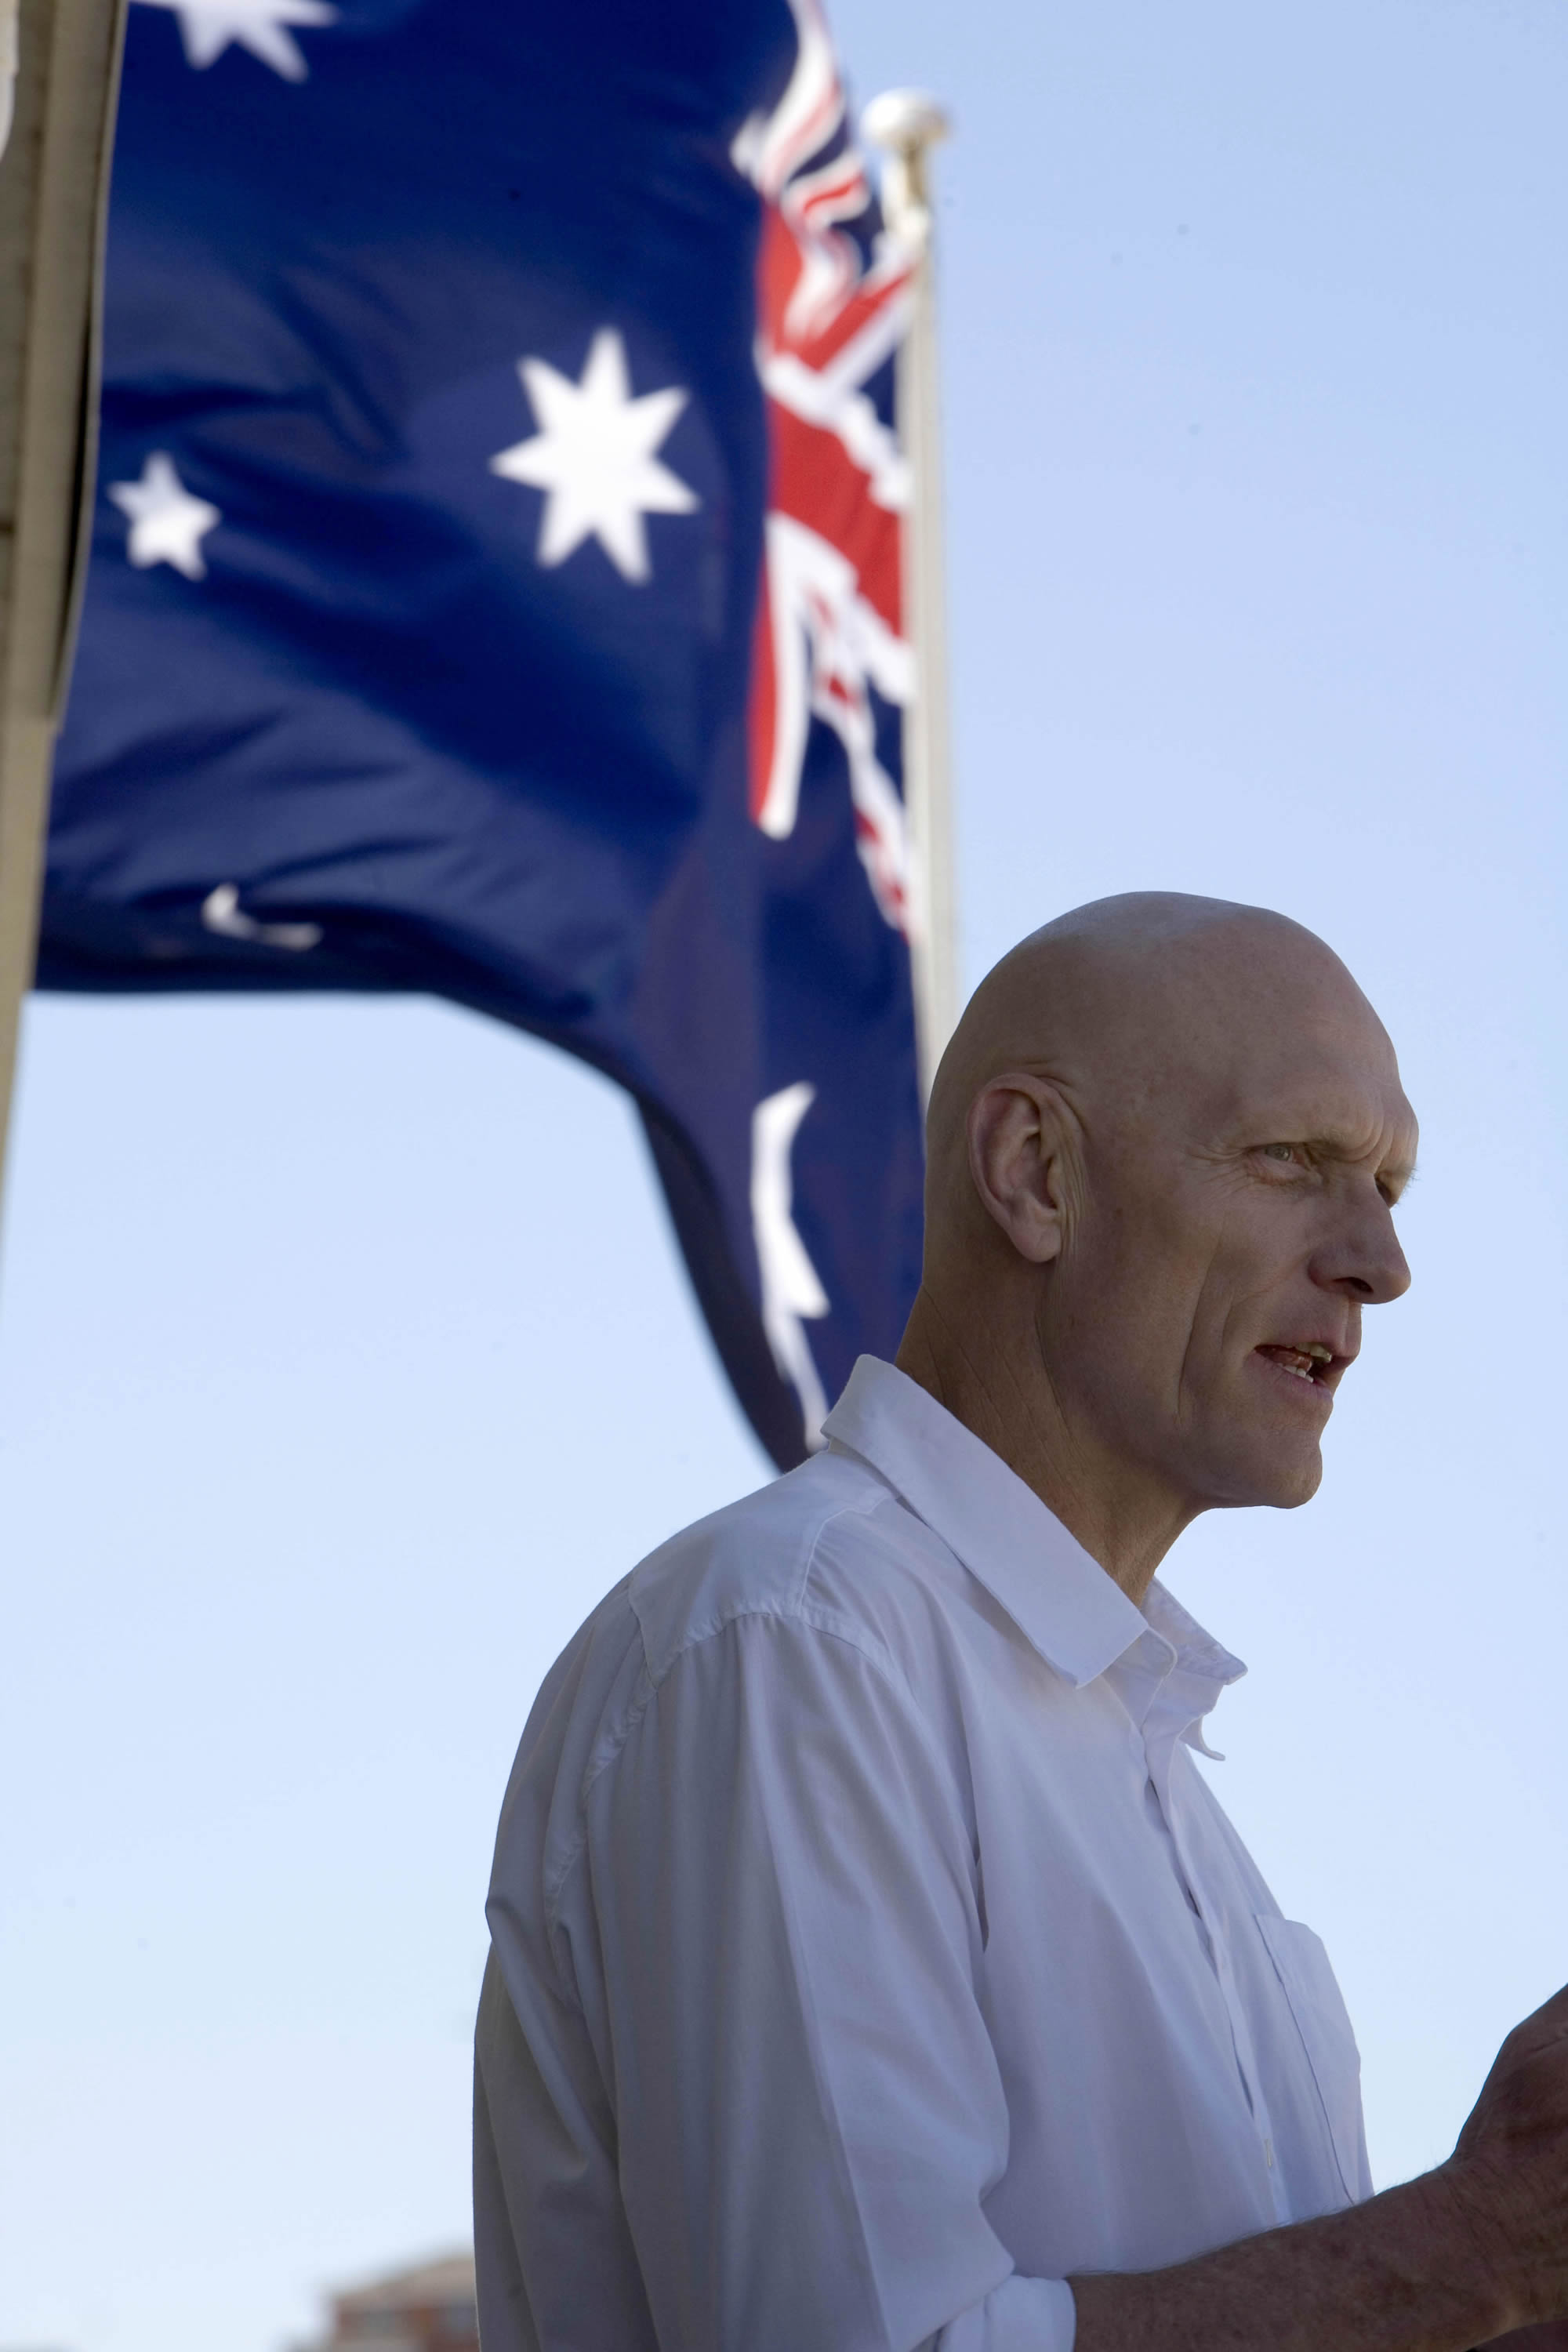 Midnight Oil's Peter Garrett demoted by Australian PM over insulation scandal